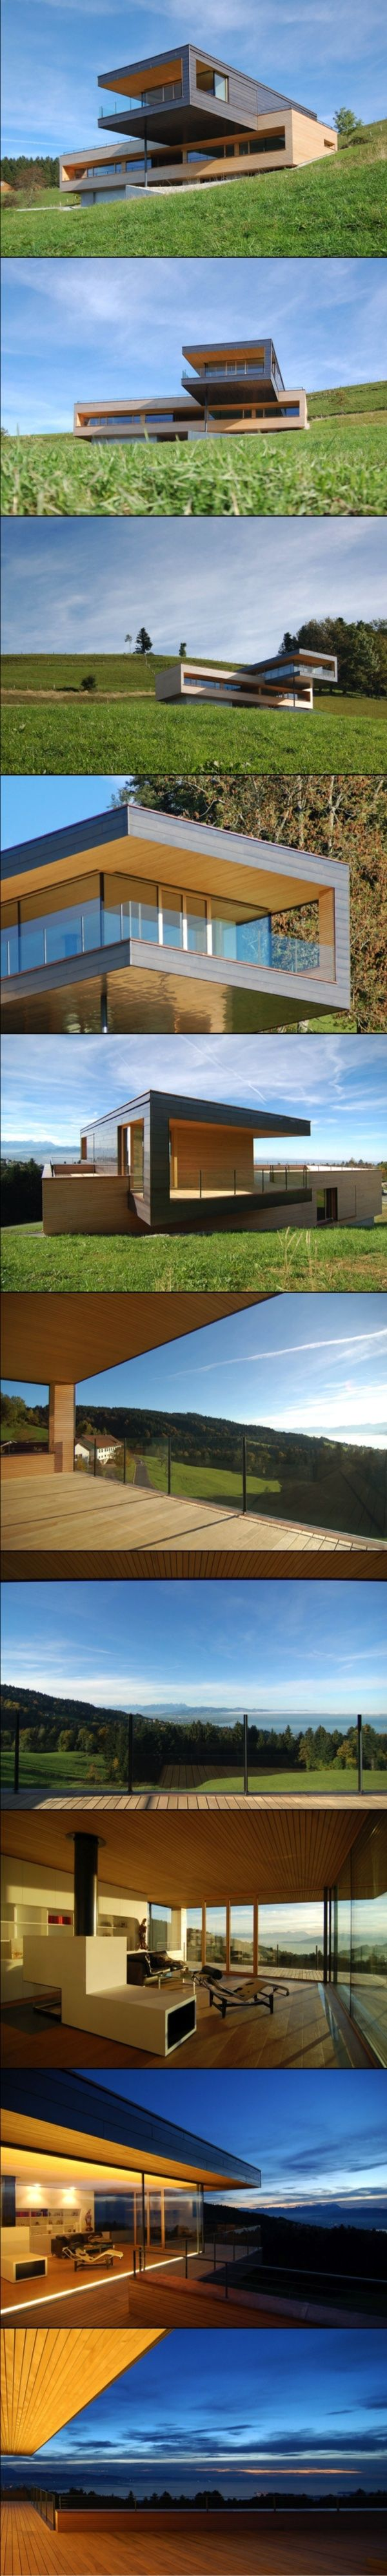 A Cantilevered Home Overlooking a Lake in Austria House Dornbin is a single family home overlooking the Rhine Valley, Lake Constance, and the Vorarlberg mountains in Austria by k_m architektur. The home sits on a sloped green meadow with a cantilevered top floor clad in copper that features an overhang for sun protection in the summer.